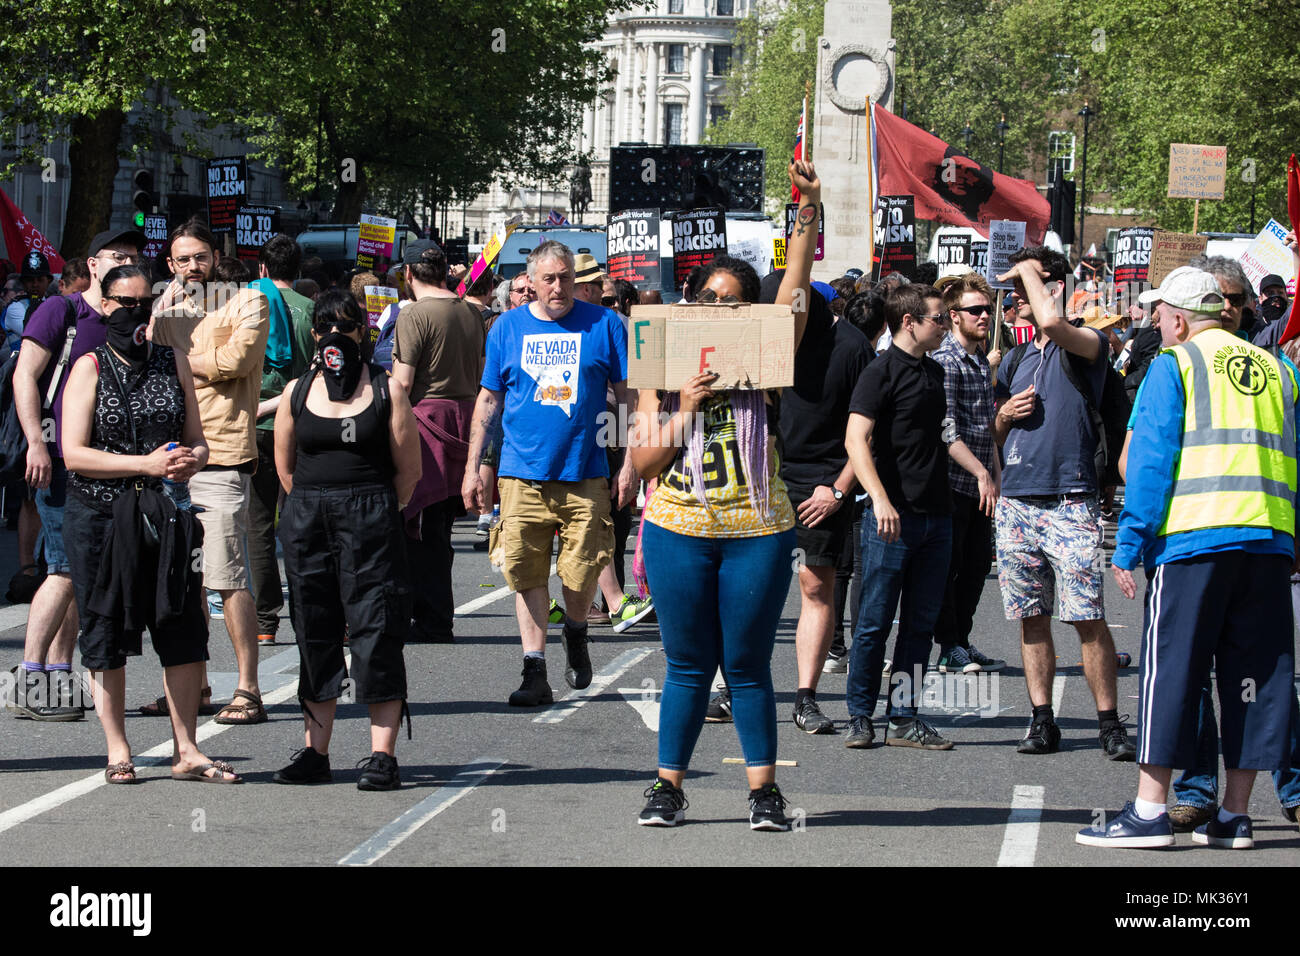 London, UK. 6th May, 2018. Anti-racist and anti-fascist groups hold a counter-protest to the far-right Democratic Football Lads Alliance's 'Day of Freedom' in Whitehall at which former English Defence League leader Tommy Robinson was scheduled to speak. Credit: Mark Kerrison/Alamy Live News - Stock Image